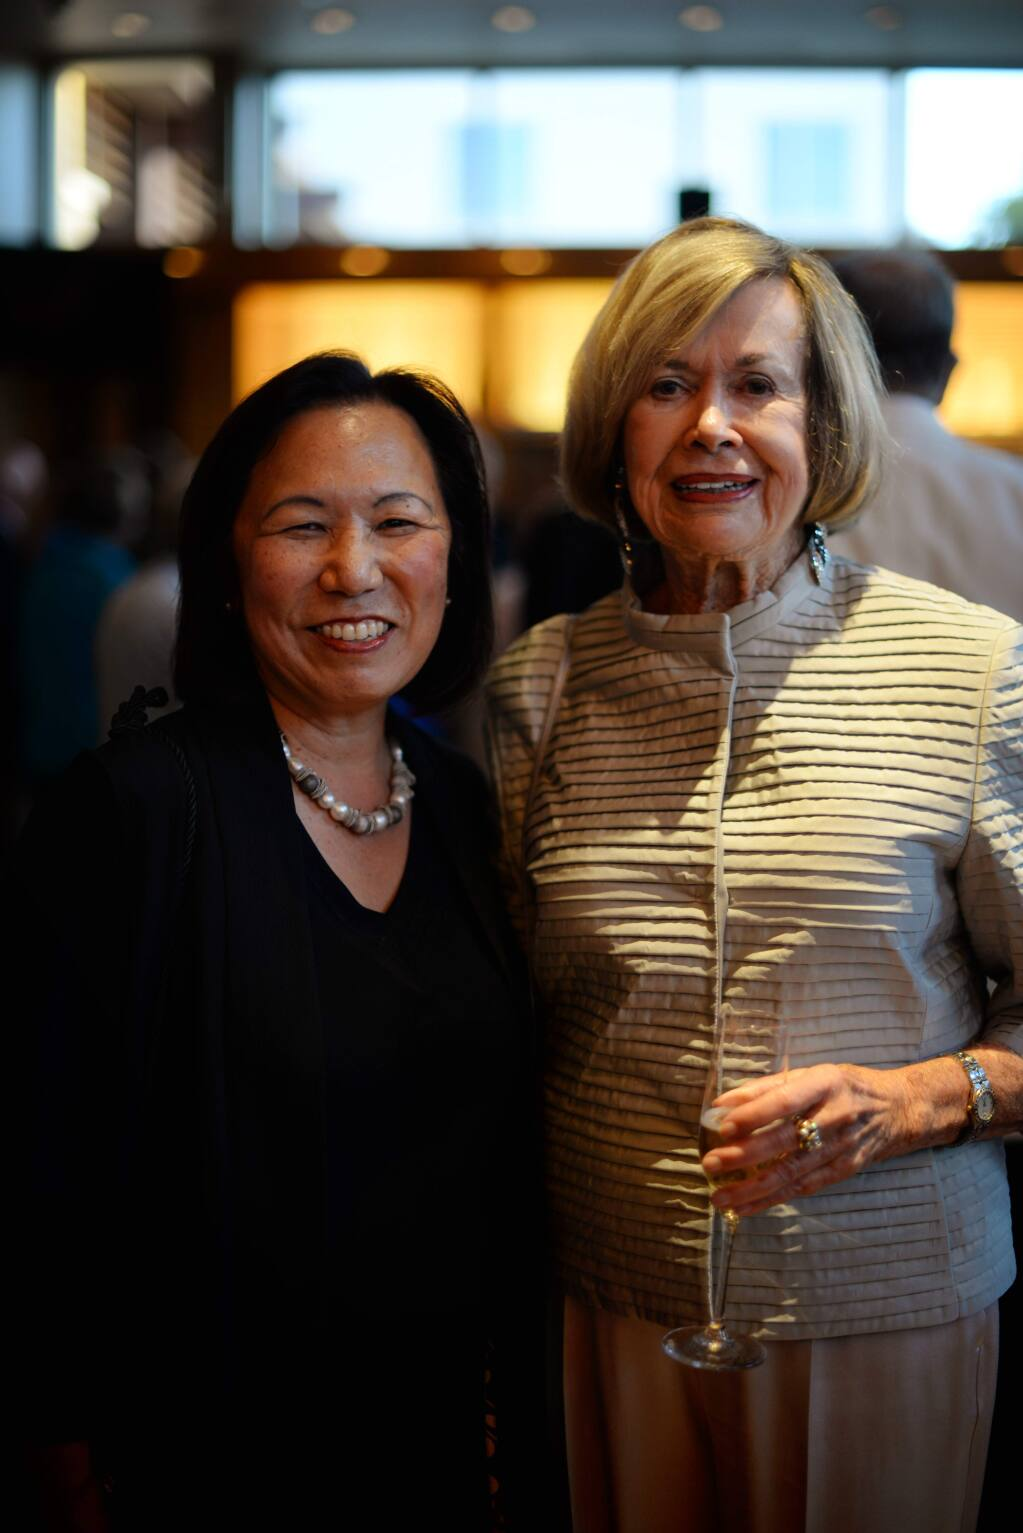 Dr. Judy K. Sakaki, left, and Connie Codding during a celebration for the Santa Rosa Symphony held at the Green Music Center in Rohnert Park, California. October 5, 2018.(Photo: Erik Castro/for The Press Democrat)